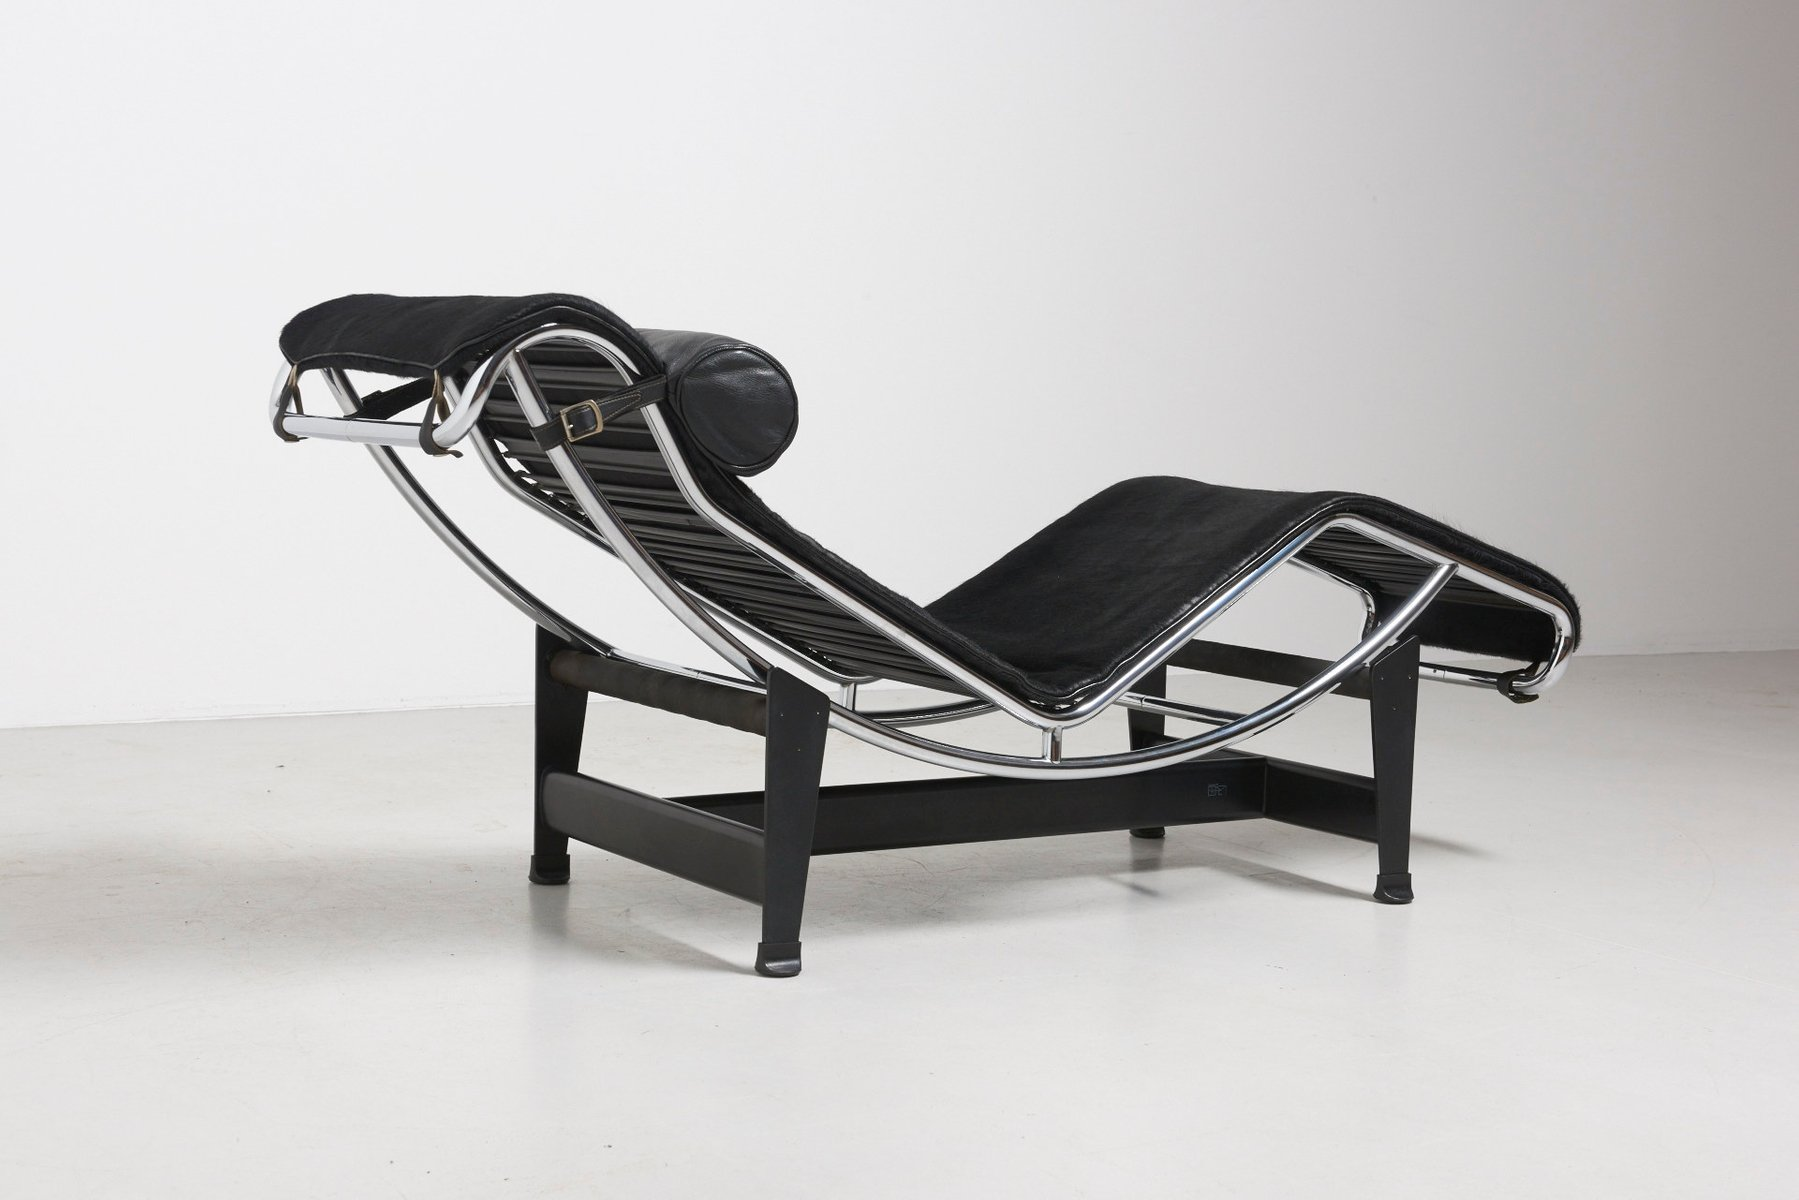 Vintage lc4 chaise lounge by le corbusier for cassina for for Chaise corbusier